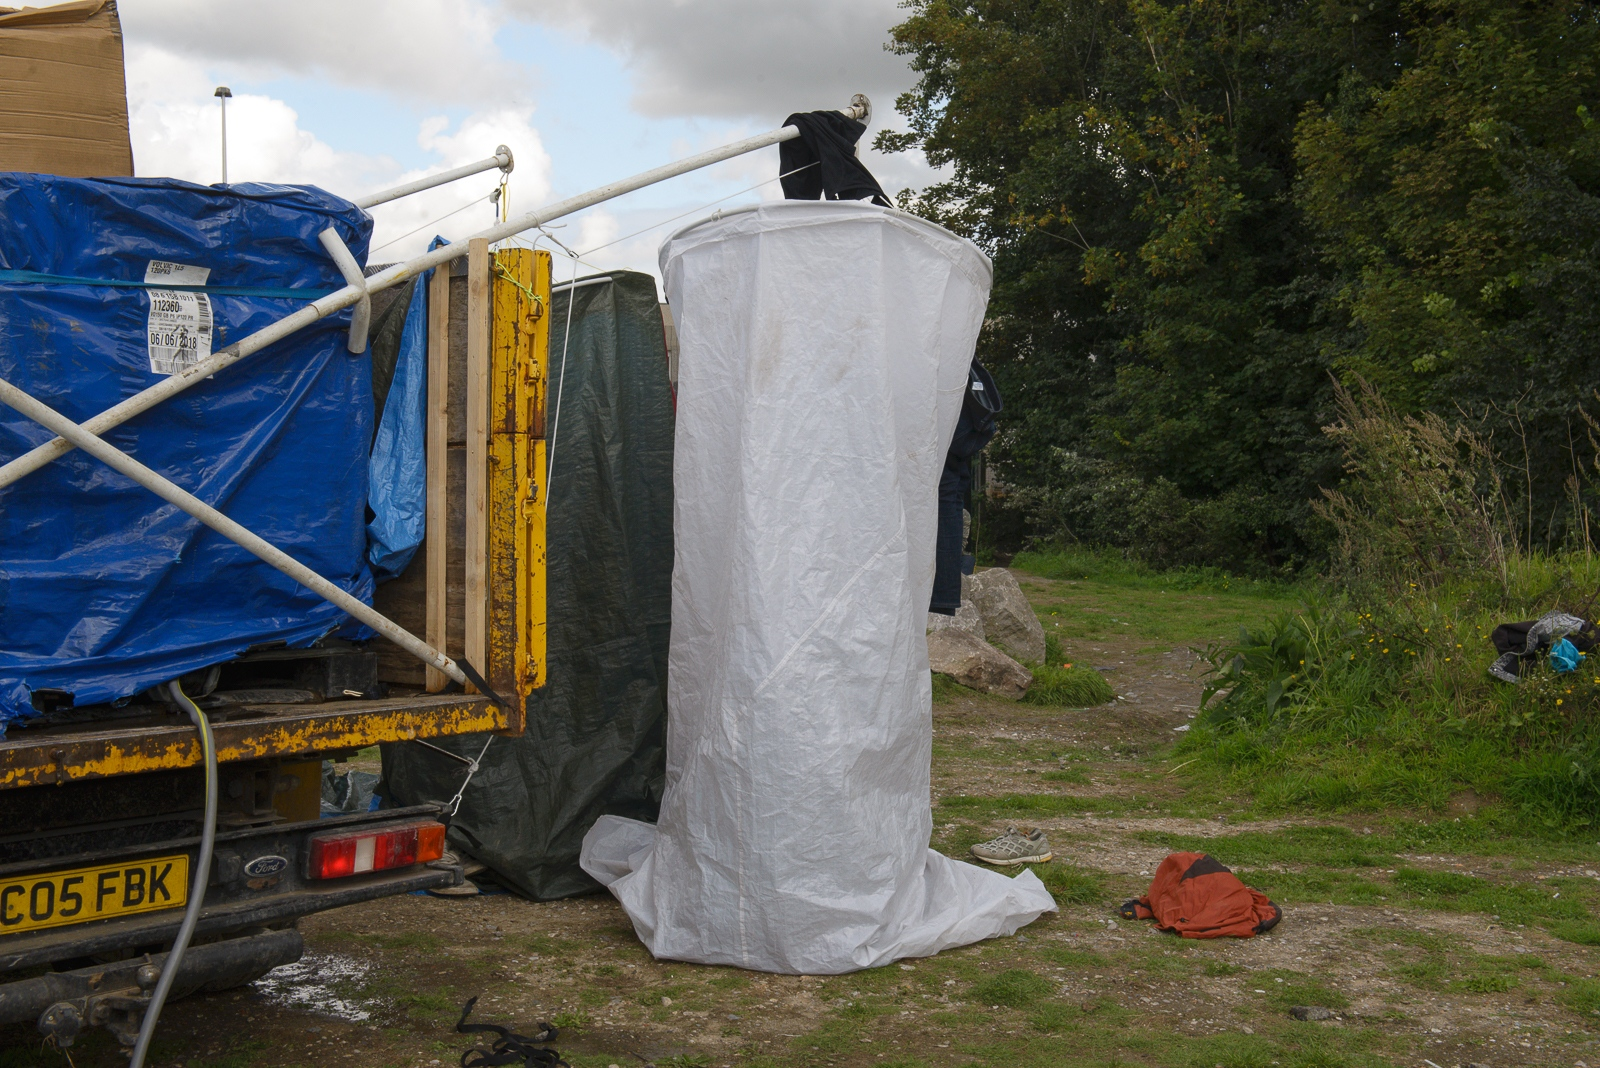 (EN) August 31, 2017 - Calais, France.  Local NGOs install six makeshift showers on a water truck. The mayor of Calais, Natacha Bouchard had chosen to pay a fine rather than provide refugees with access to safe water and sanitation. The fine was imposed after the court ruling by the highest administrative court in France that demanded the city of Calais provide certain services to refugees, including access to safe water and sanitation.  (ES) 31 de agosto de 2017 - Calais, Francia. Las ONG locales instalan seis duchas improvisadas en un camión de agua. La alcaldesa de Calais, Natacha Bouchard, había decidido pagar una multa en lugar de proporcionar a los refugiados acceso a agua potable y saneamiento. La multa fue impuesta luego del fallo judicial del tribunal administrativo más alto de Francia que exigía que la ciudad de Calais brindara ciertos servicios a los refugiados, incluido el acceso a agua potable y saneamiento. (FR) 31 août 2017 - Calais, France. Les associations locales ont installé six douches précaires sur leur camion-citerne. À l'époque, la maire de Calais, Natacha Bouchard, avait choisi de payer une amende plutôt que de donner aux exilé(e)s un accès à l'eau potable et à l'assainissement. L'amende a été imposée par une décision de justice qui demandait au maire de Calais de fournir certains services, y compris l'accès à l'eau potable et à l'assainissement.